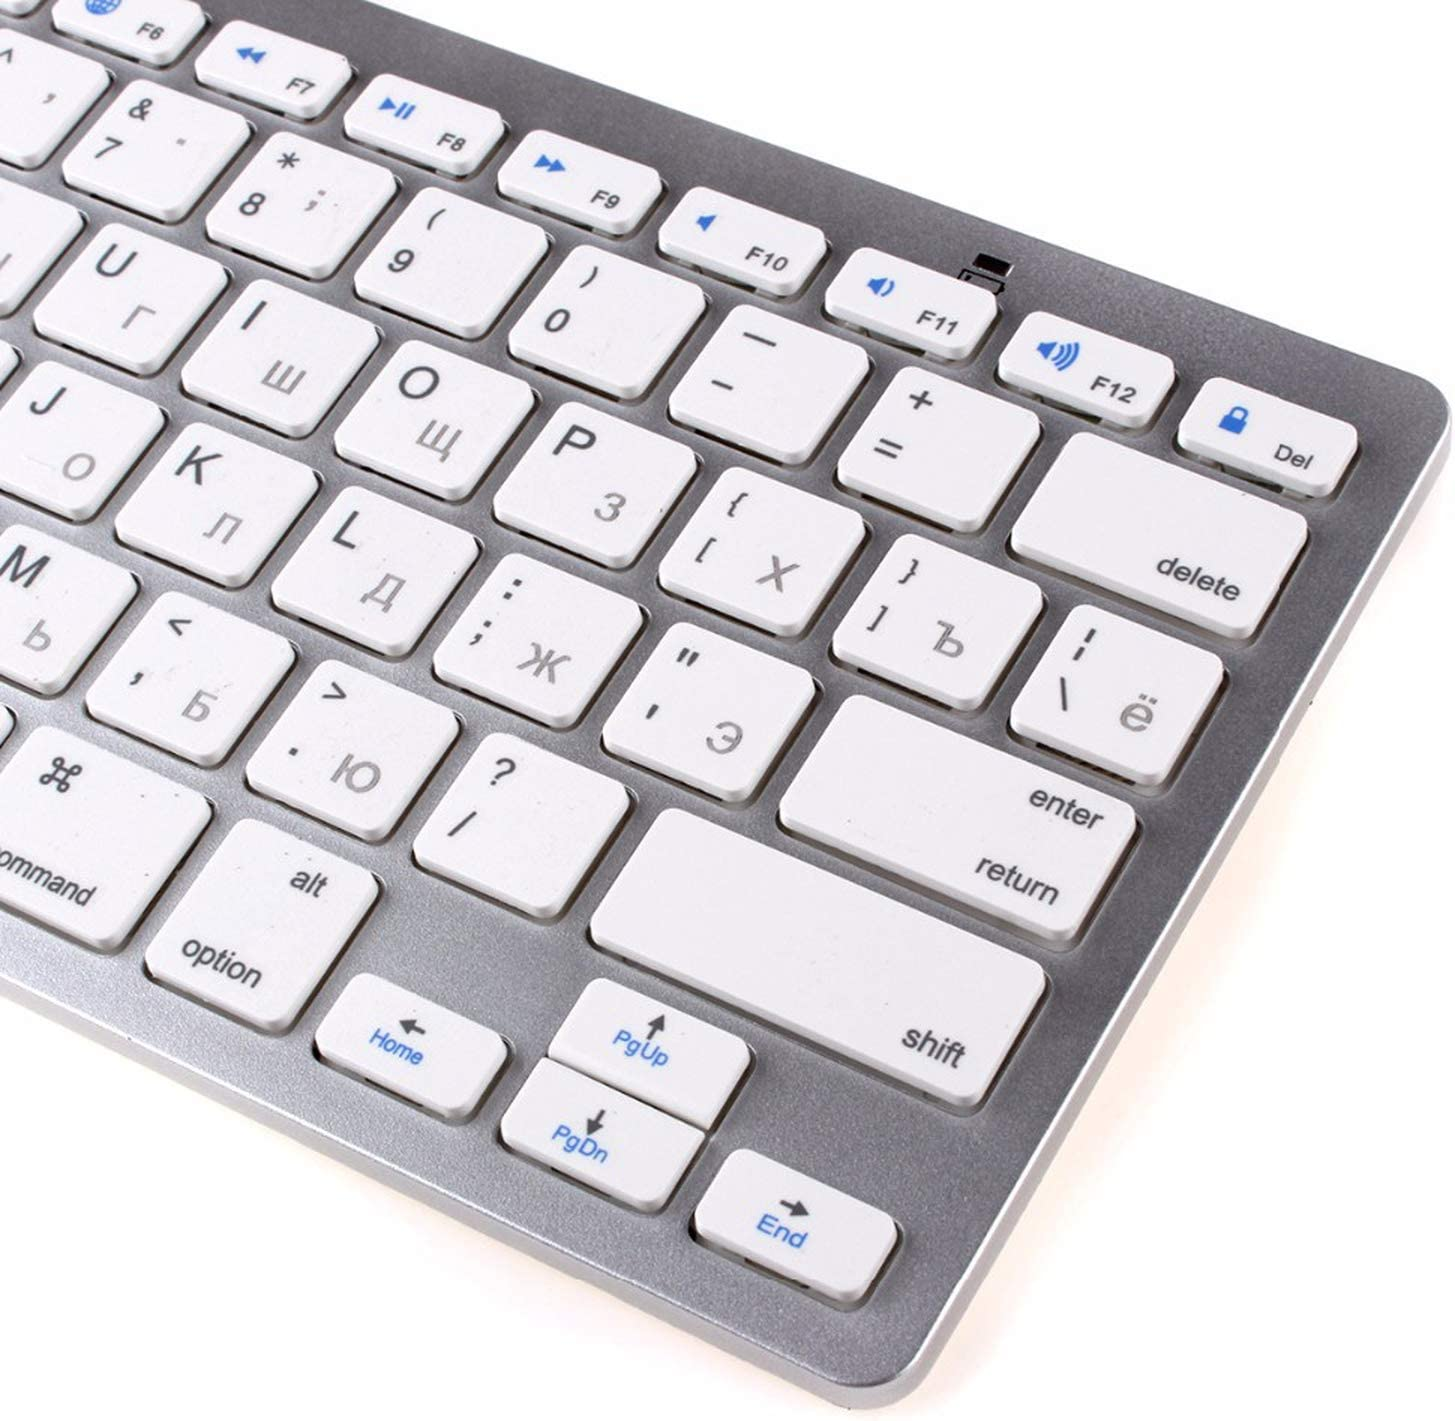 Russian Wireless Bluetooth 3.0 Keyboard for Tablet Laptop Smartphone Support iOS Windows Android System Silver and Black,Black English Letter